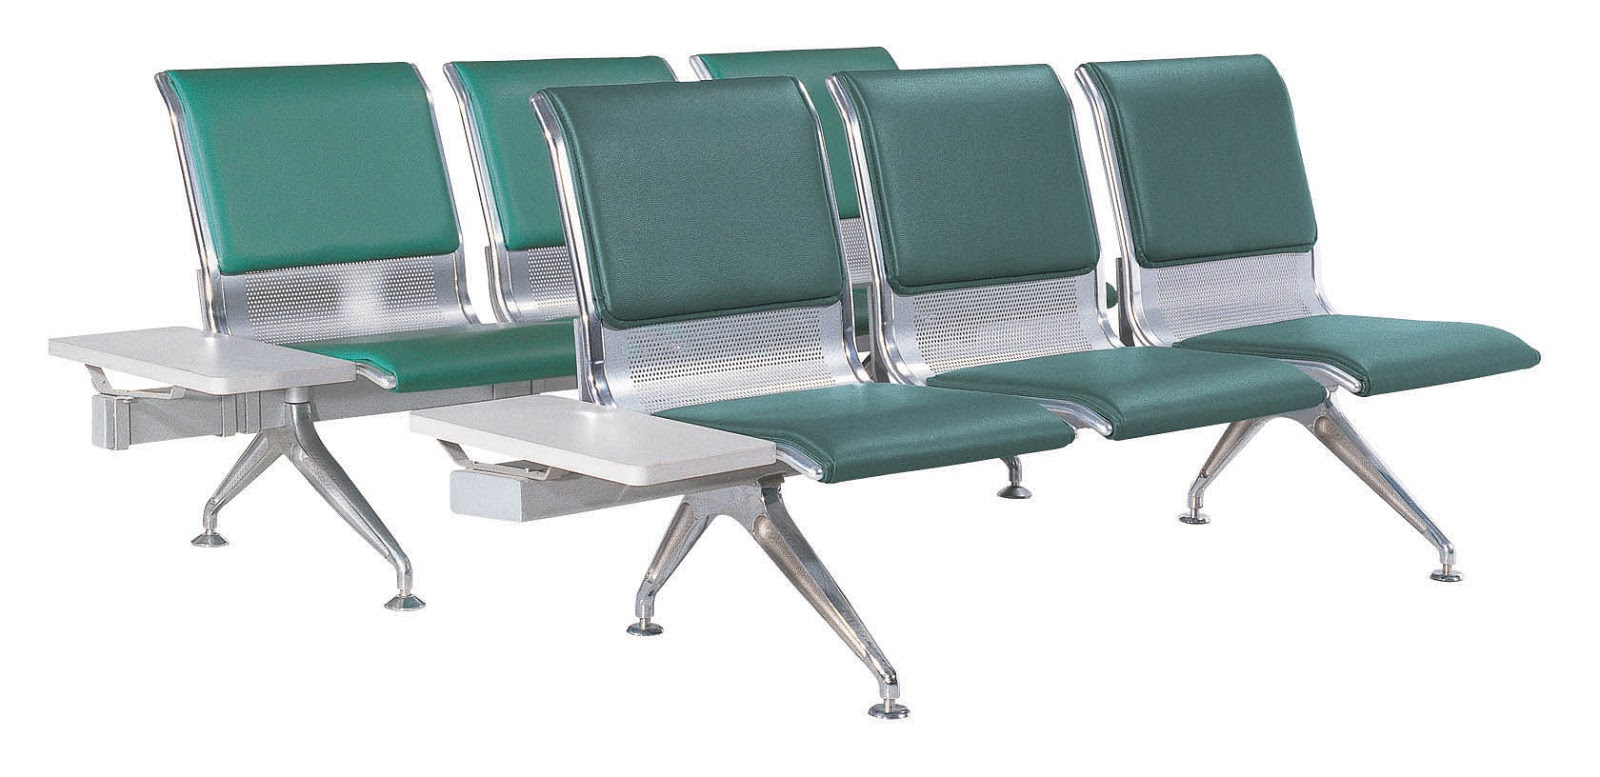 Airport Chair for Hospital,Bank,Station Waiting Room ...